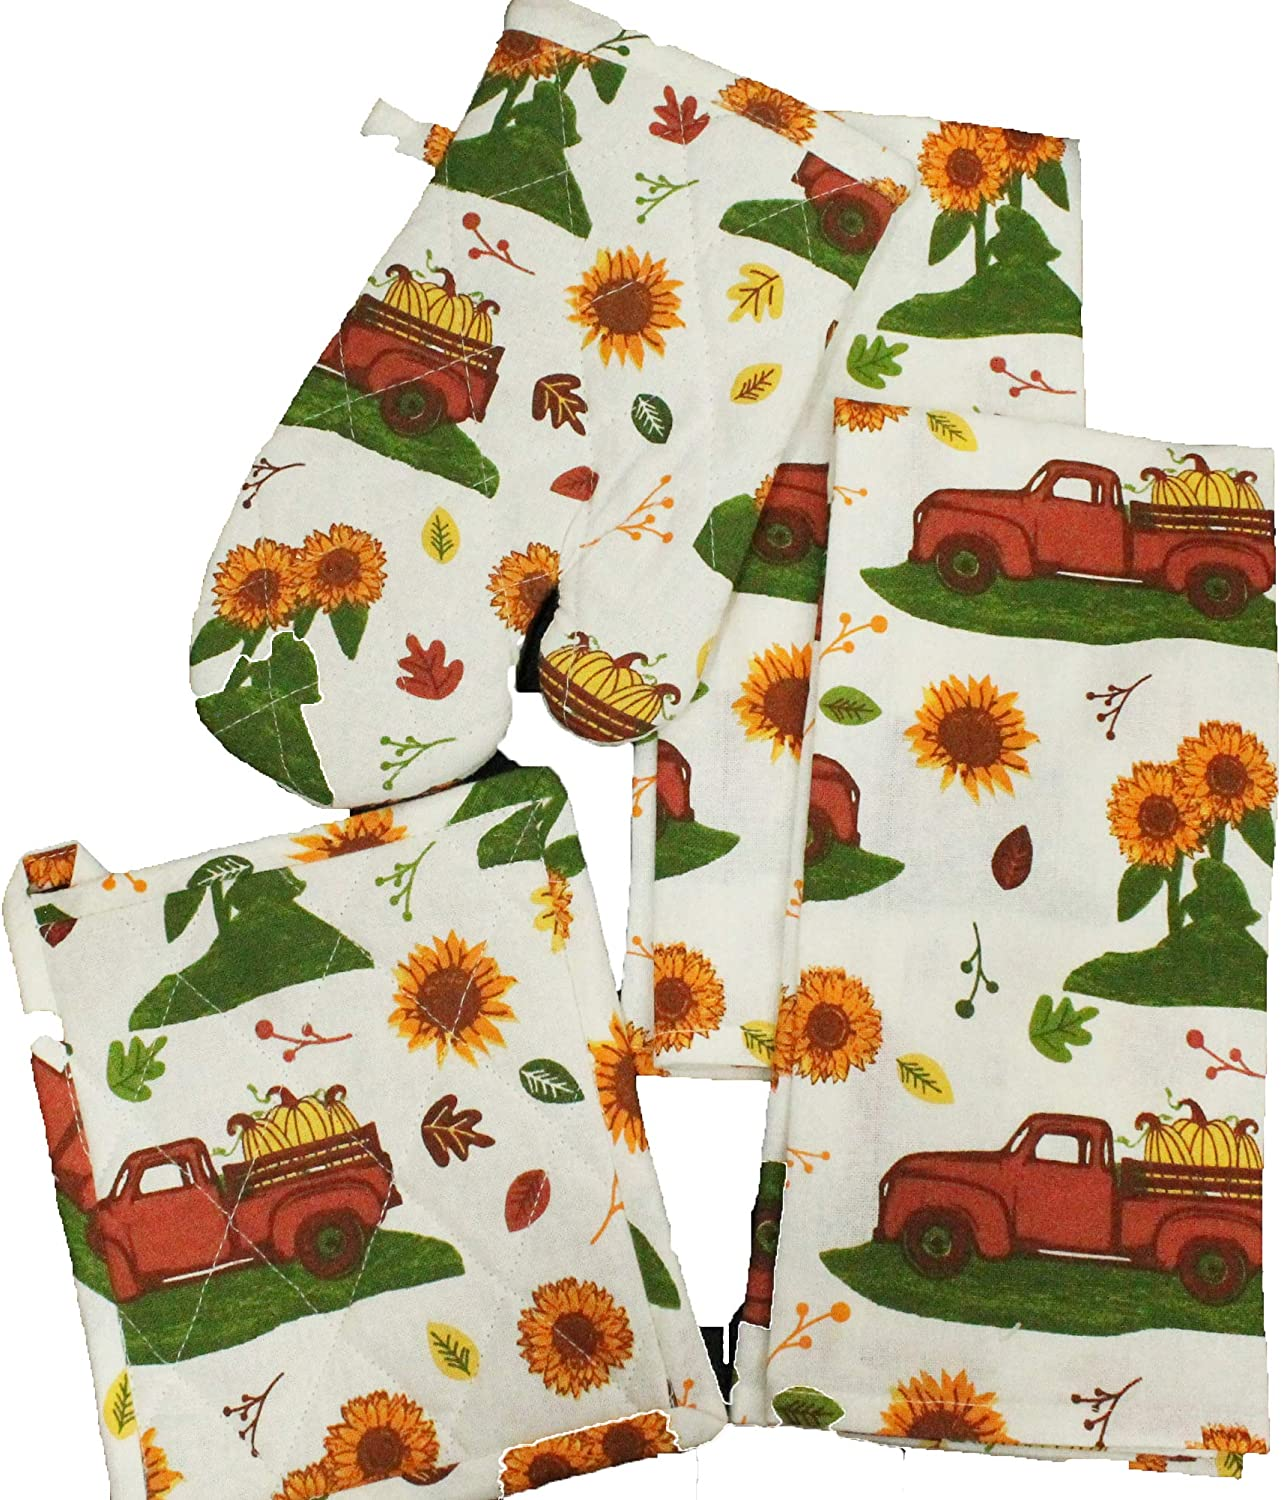 Twisted Anchor Trading Co 4 Pc Vintage Truck Fall Autumn Pumpkins and Sunflower Kitchen Towel Set - 2019 - Includes Pot Holder, 2 Fall Kitchen Towel, and Oven Mitt